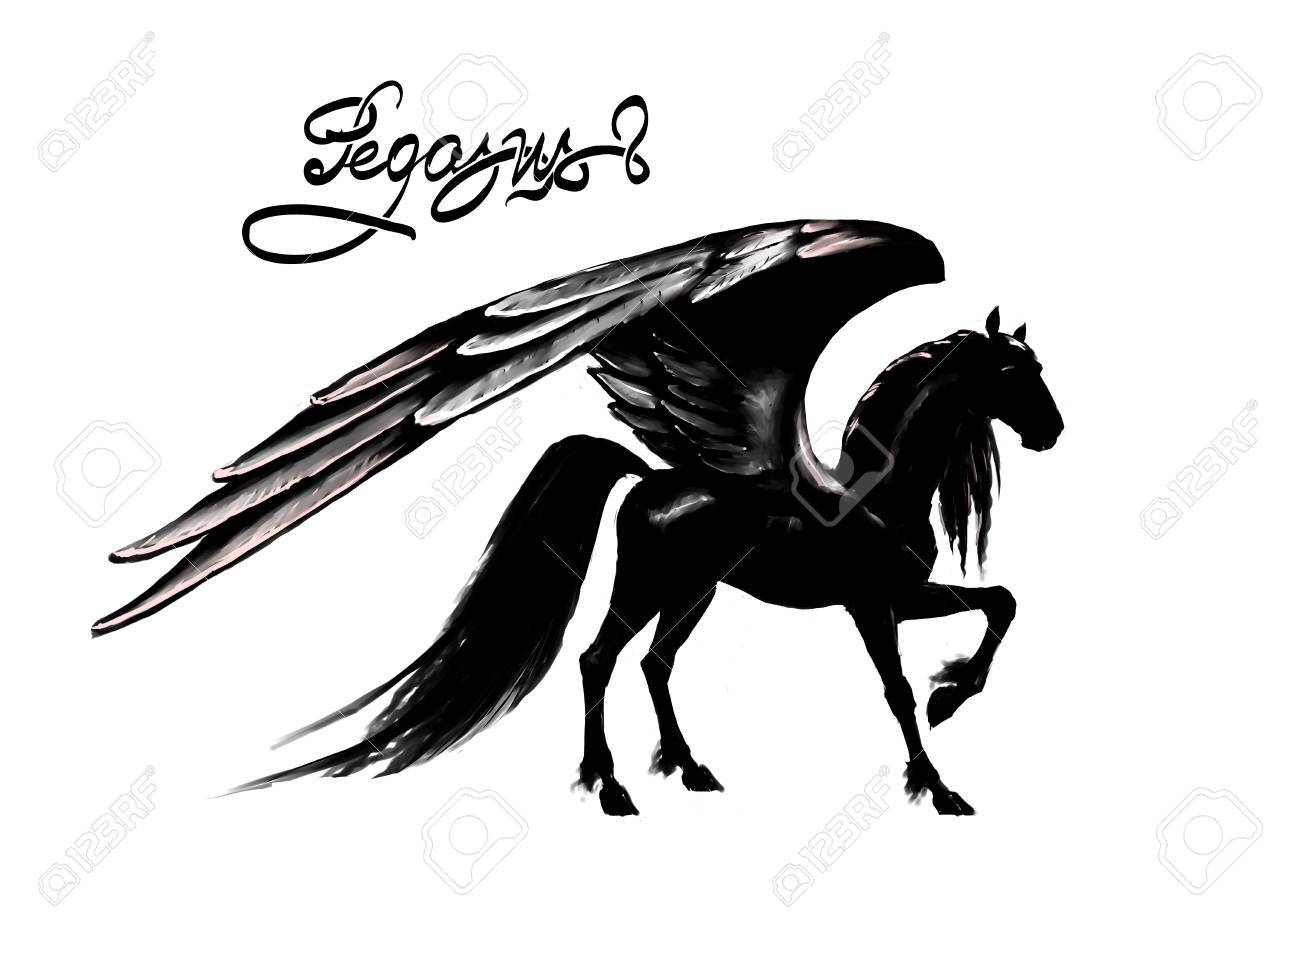 Pegasus Black Horse Wings Fantasy Pattern Stock Photo Picture And Royalty Free Image Image 73014737